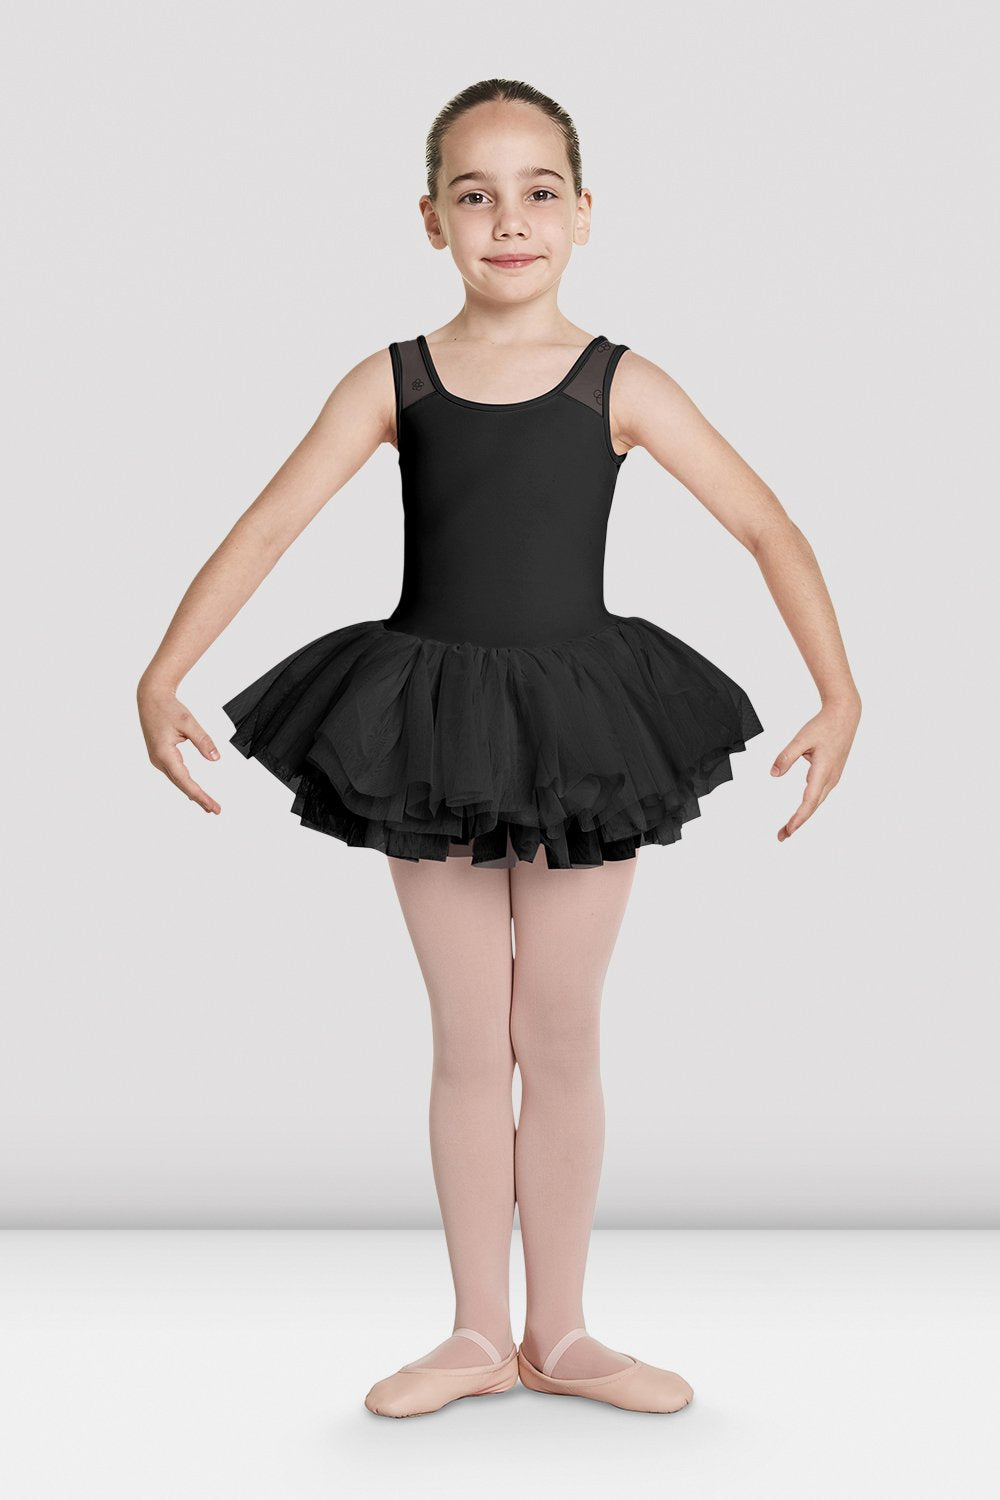 Girls Aiko Tutu Tank Leotard - BLOCH US